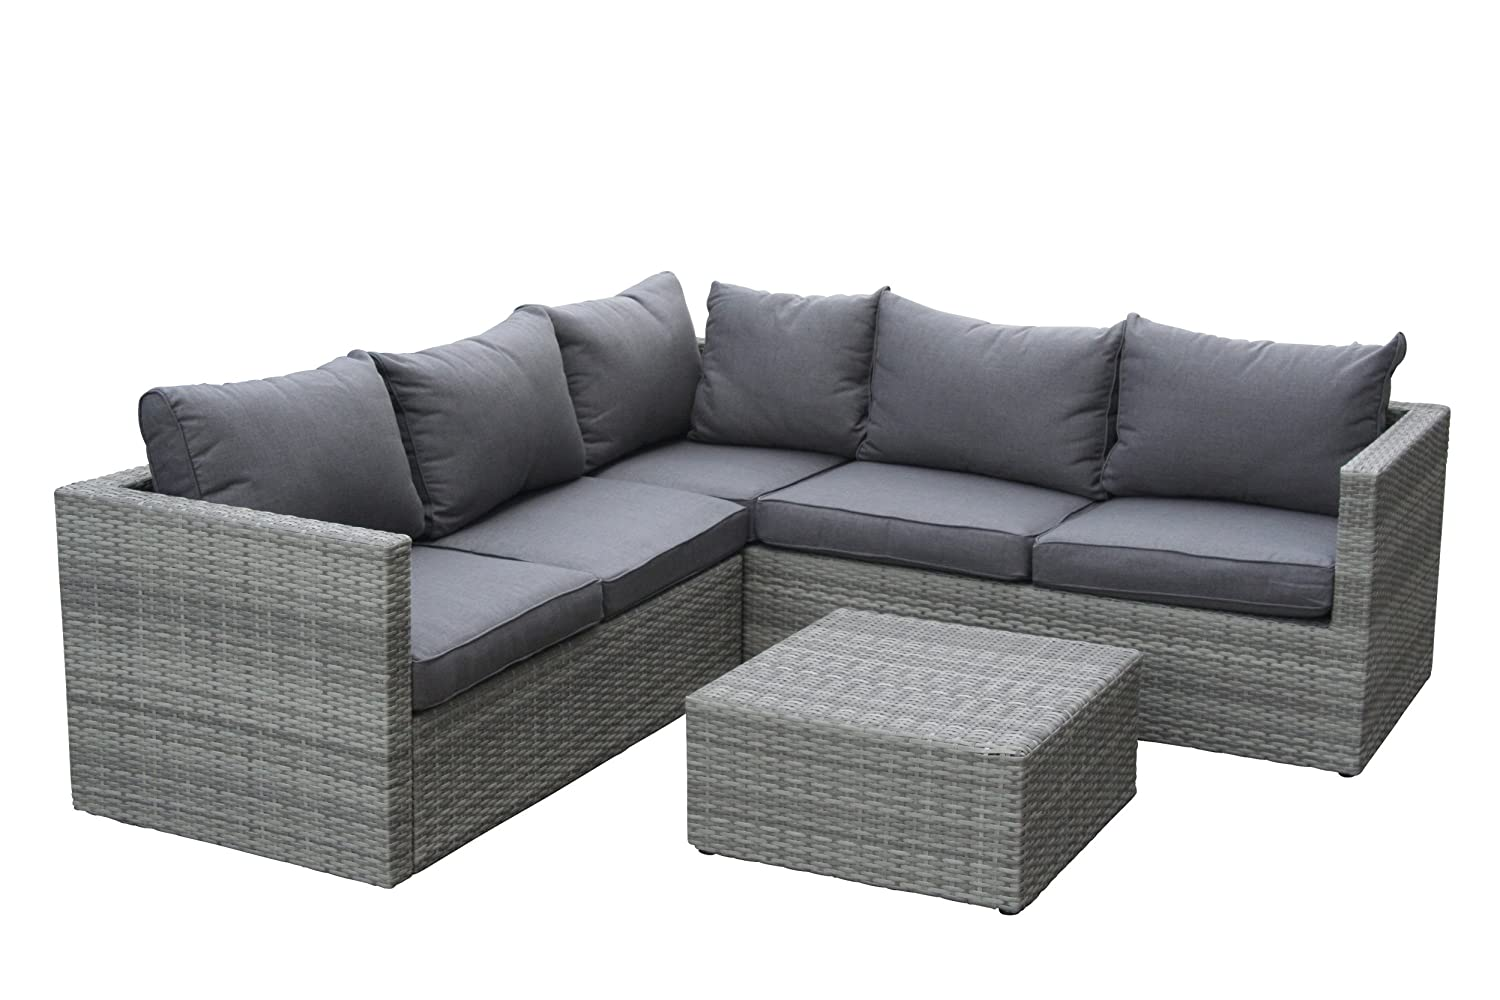 Poly rattan sofa lounge set malta grau gartenm bel set for Ecksofa terracotta